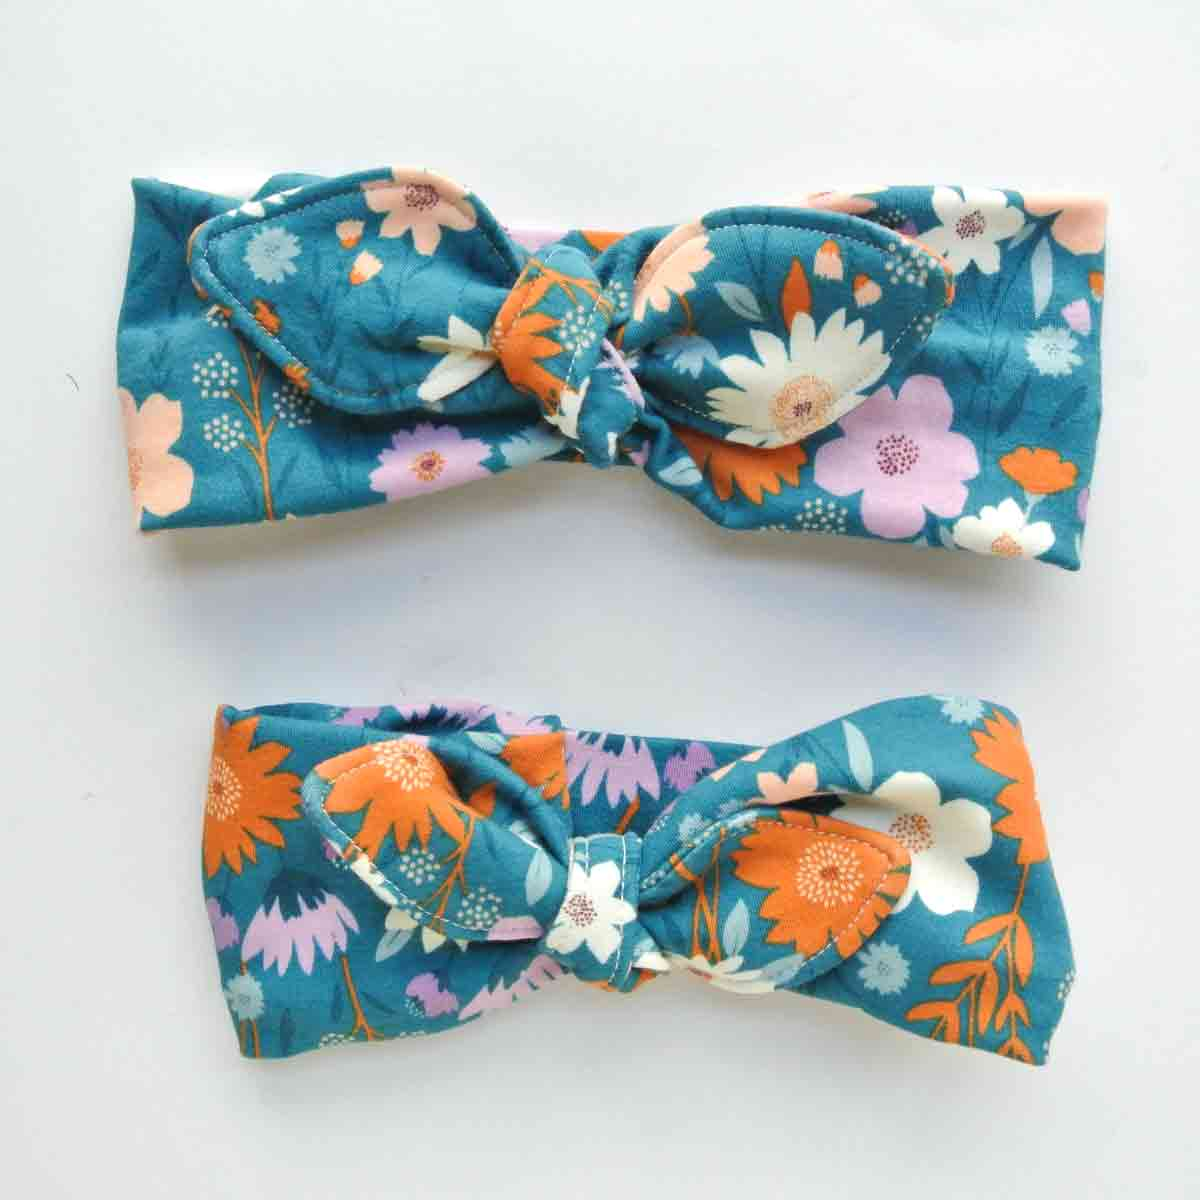 DIY Headband finished, adult and girls size with bow tied on both